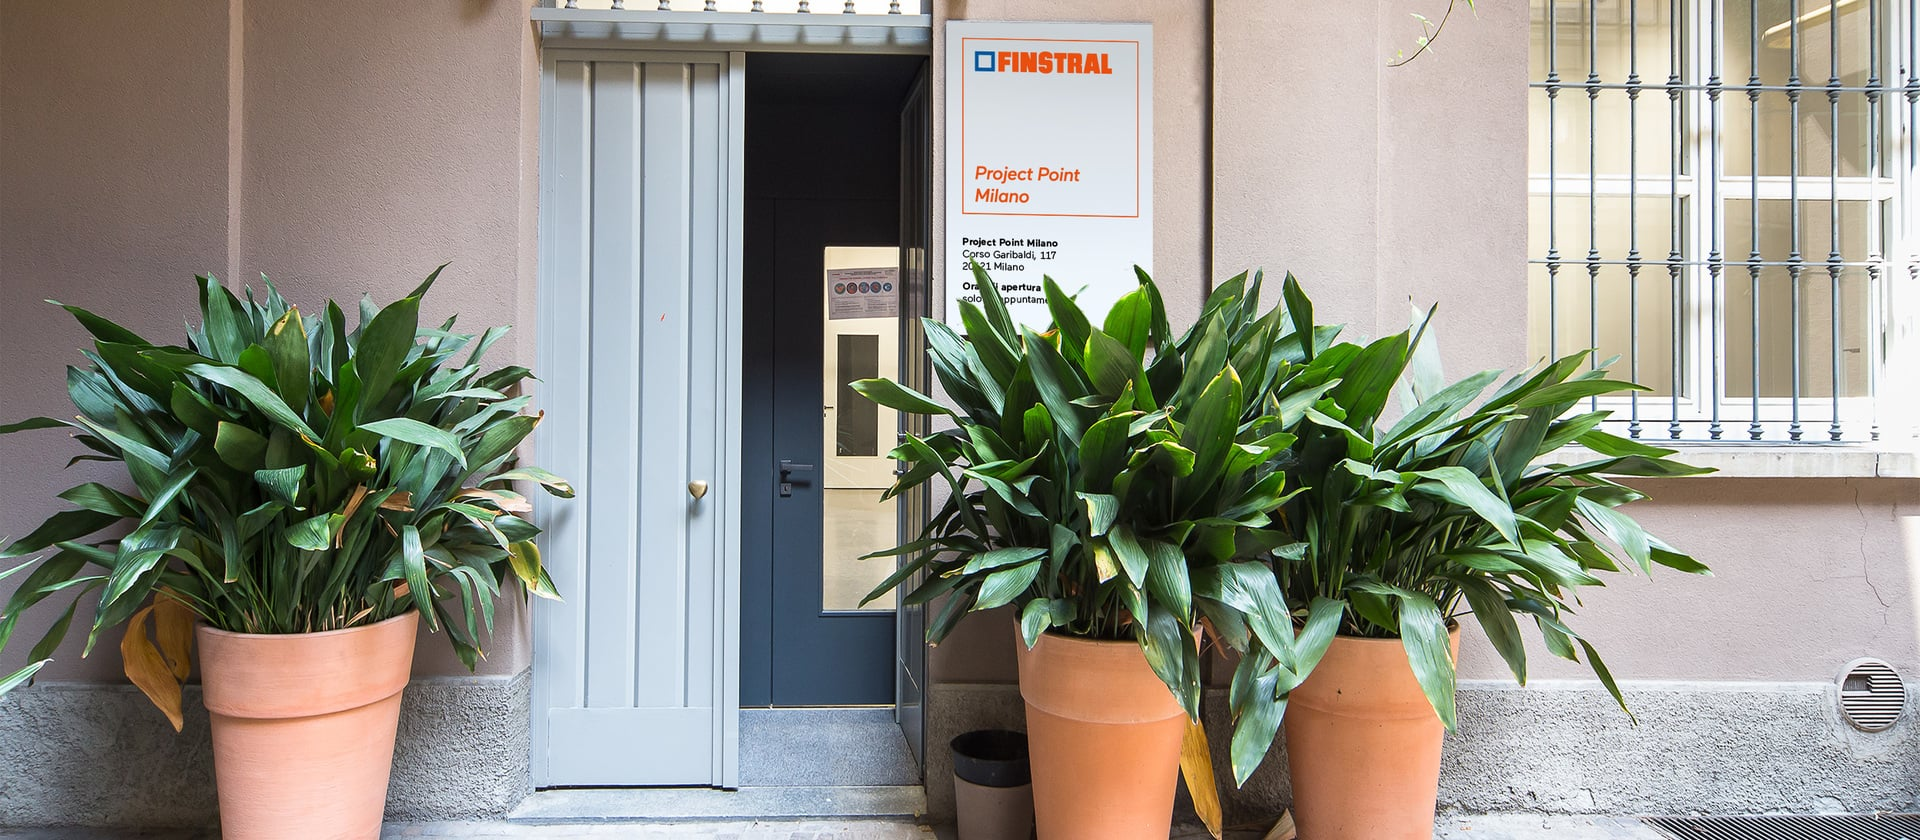 Finstral Project Point Milano